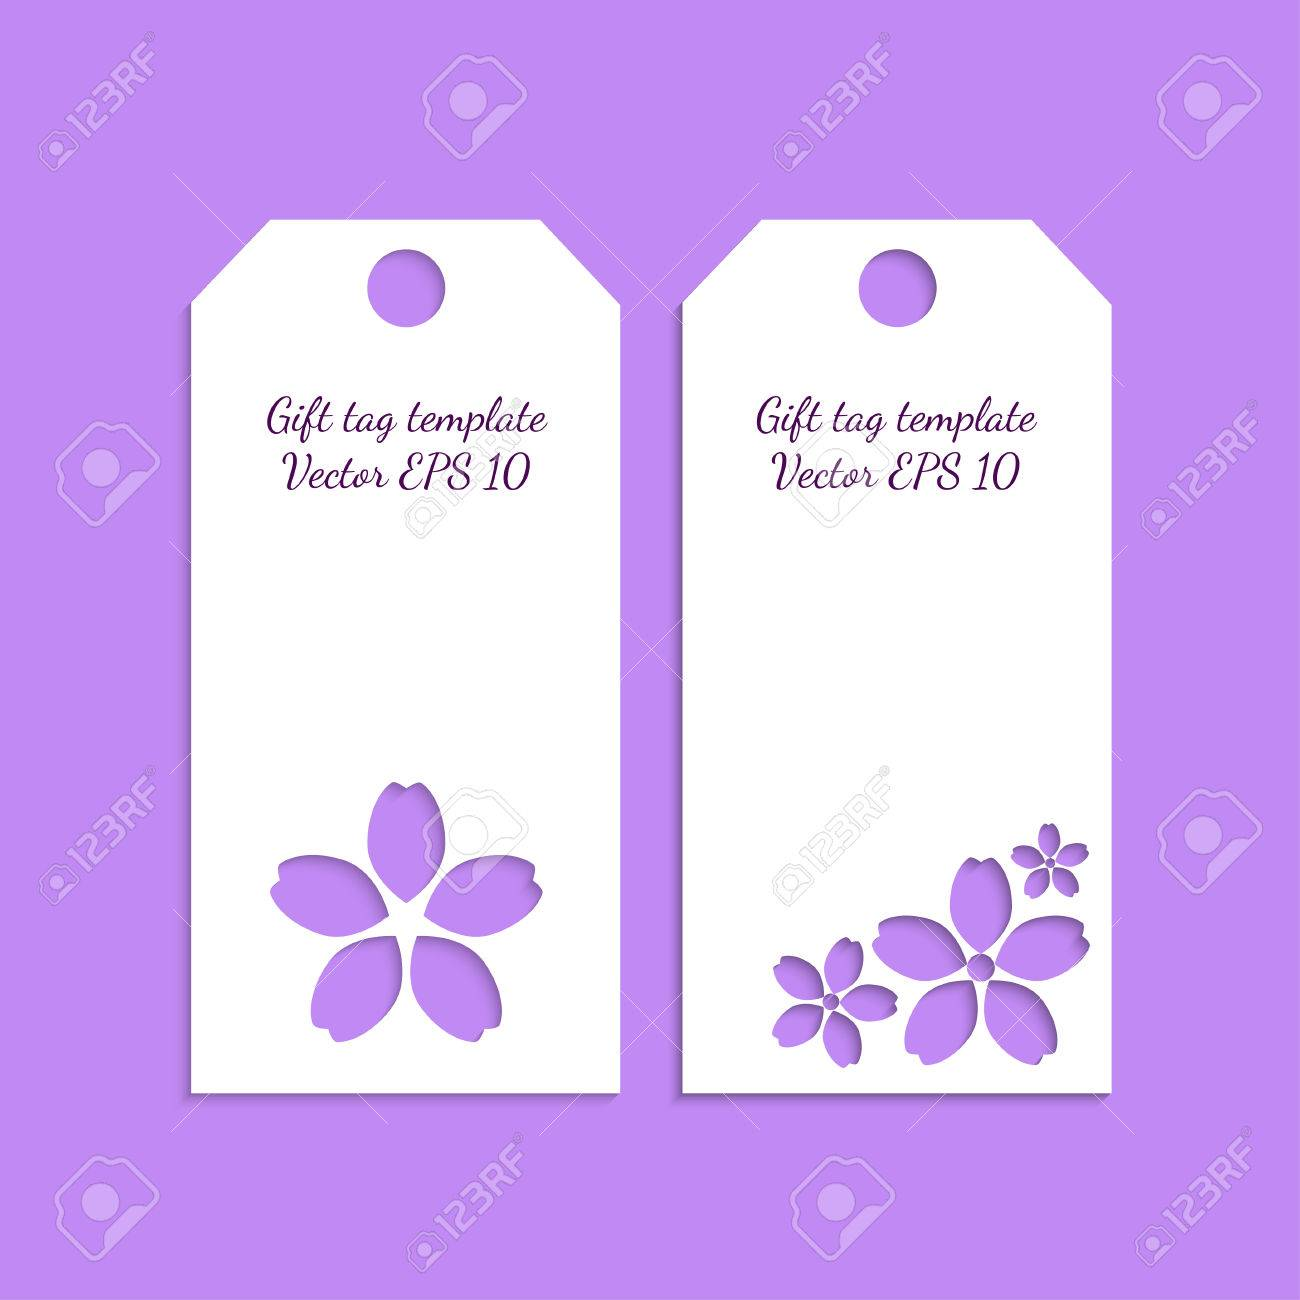 Paper Gift Tag Template With Flower Ornament On Lilac Background